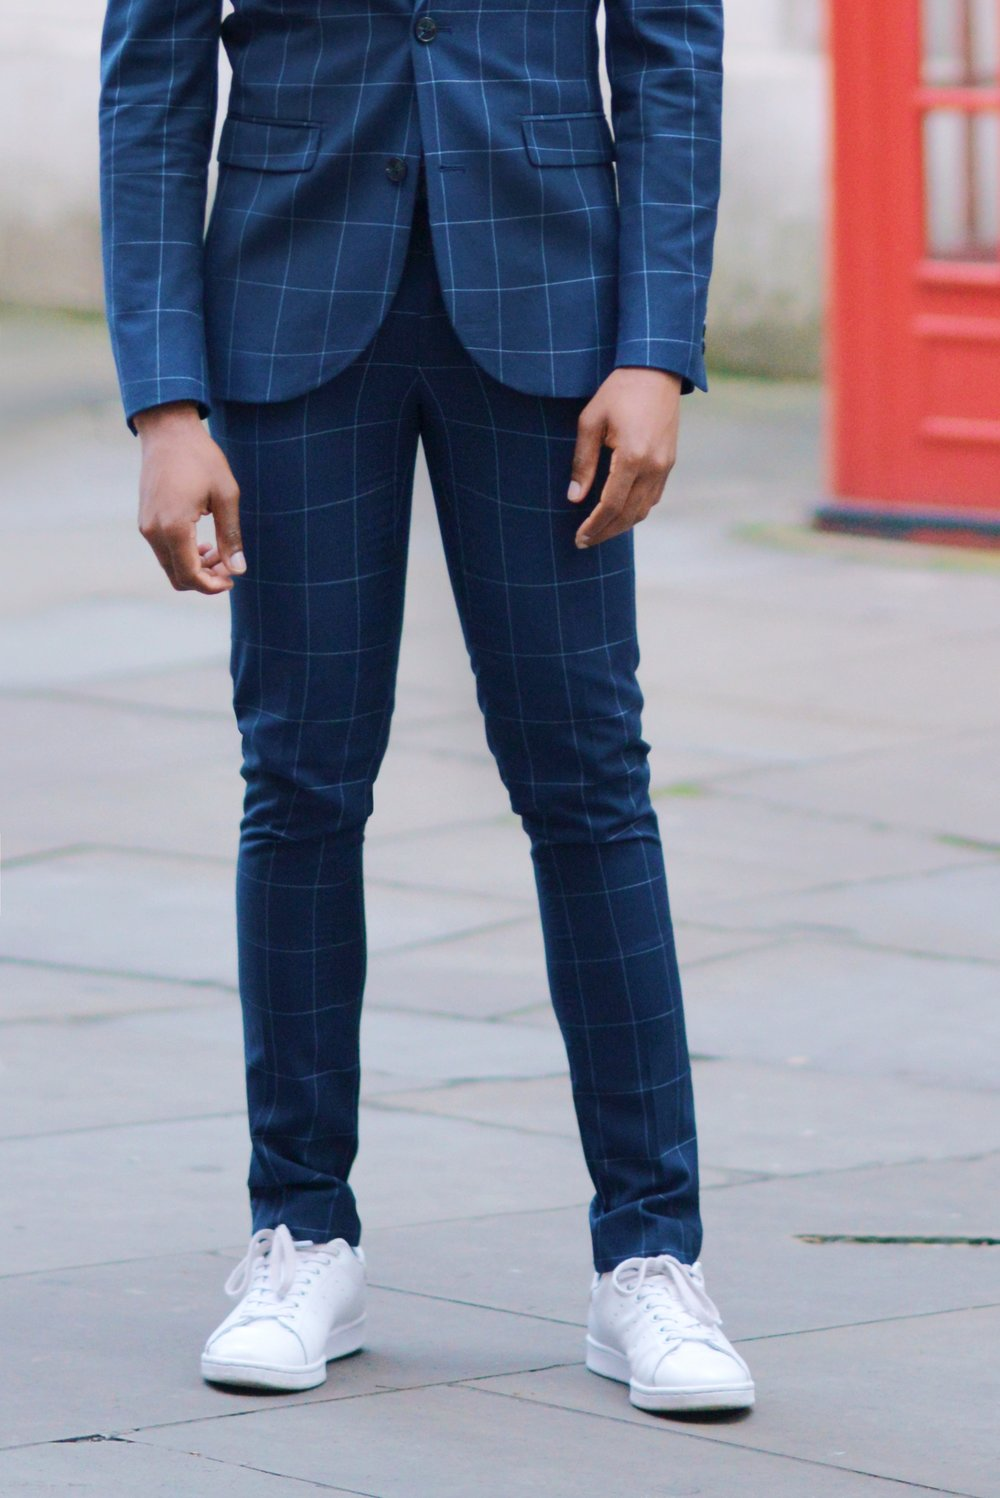 The-Look-Principle-Suited-Up-In-London-5.jpg